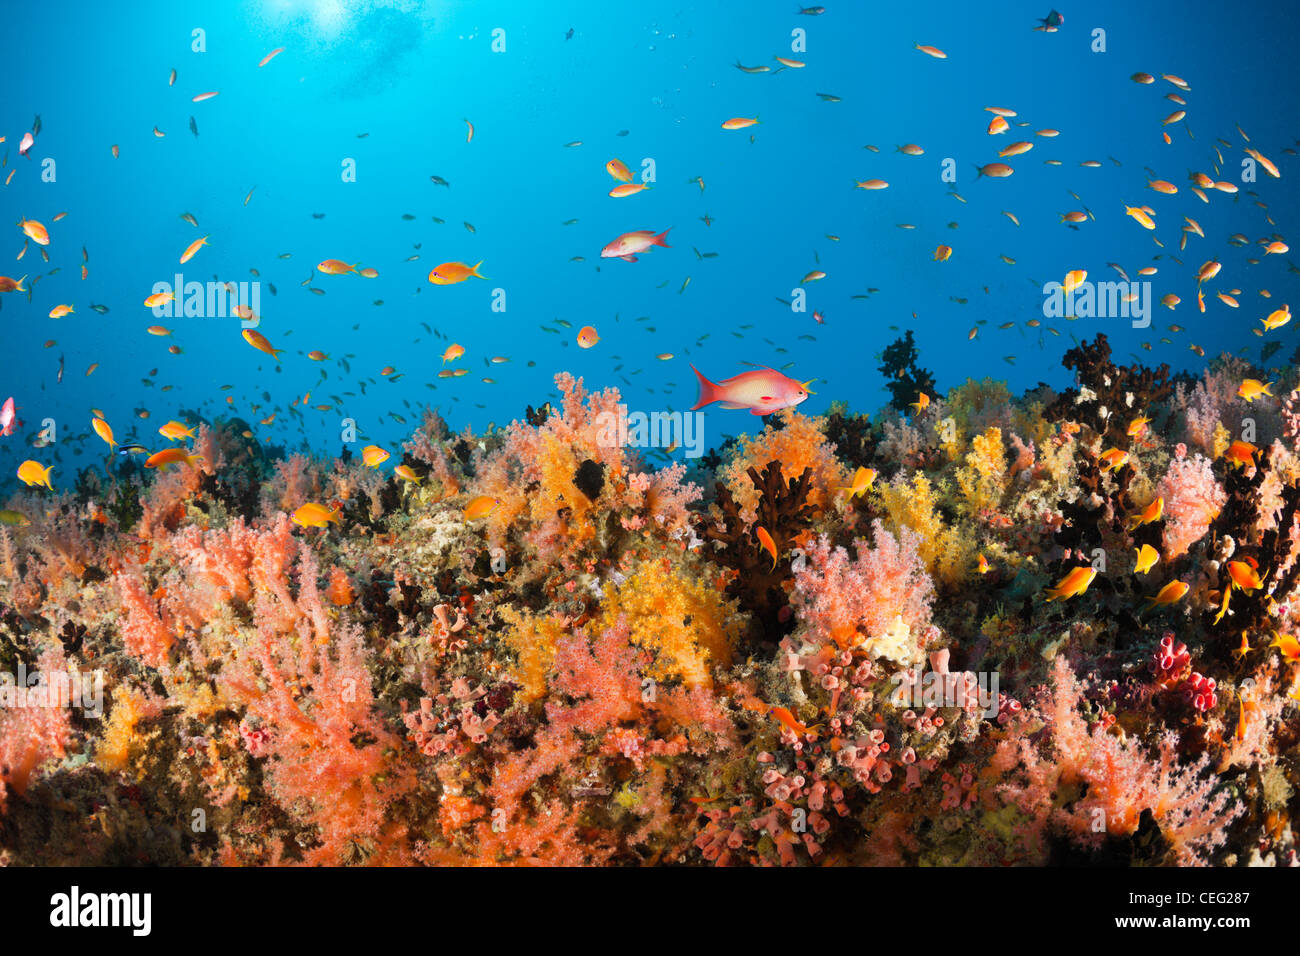 Coral Fishes over Soft Coral Reef, Baa Atoll, Indian Ocean, Maldives - Stock Image